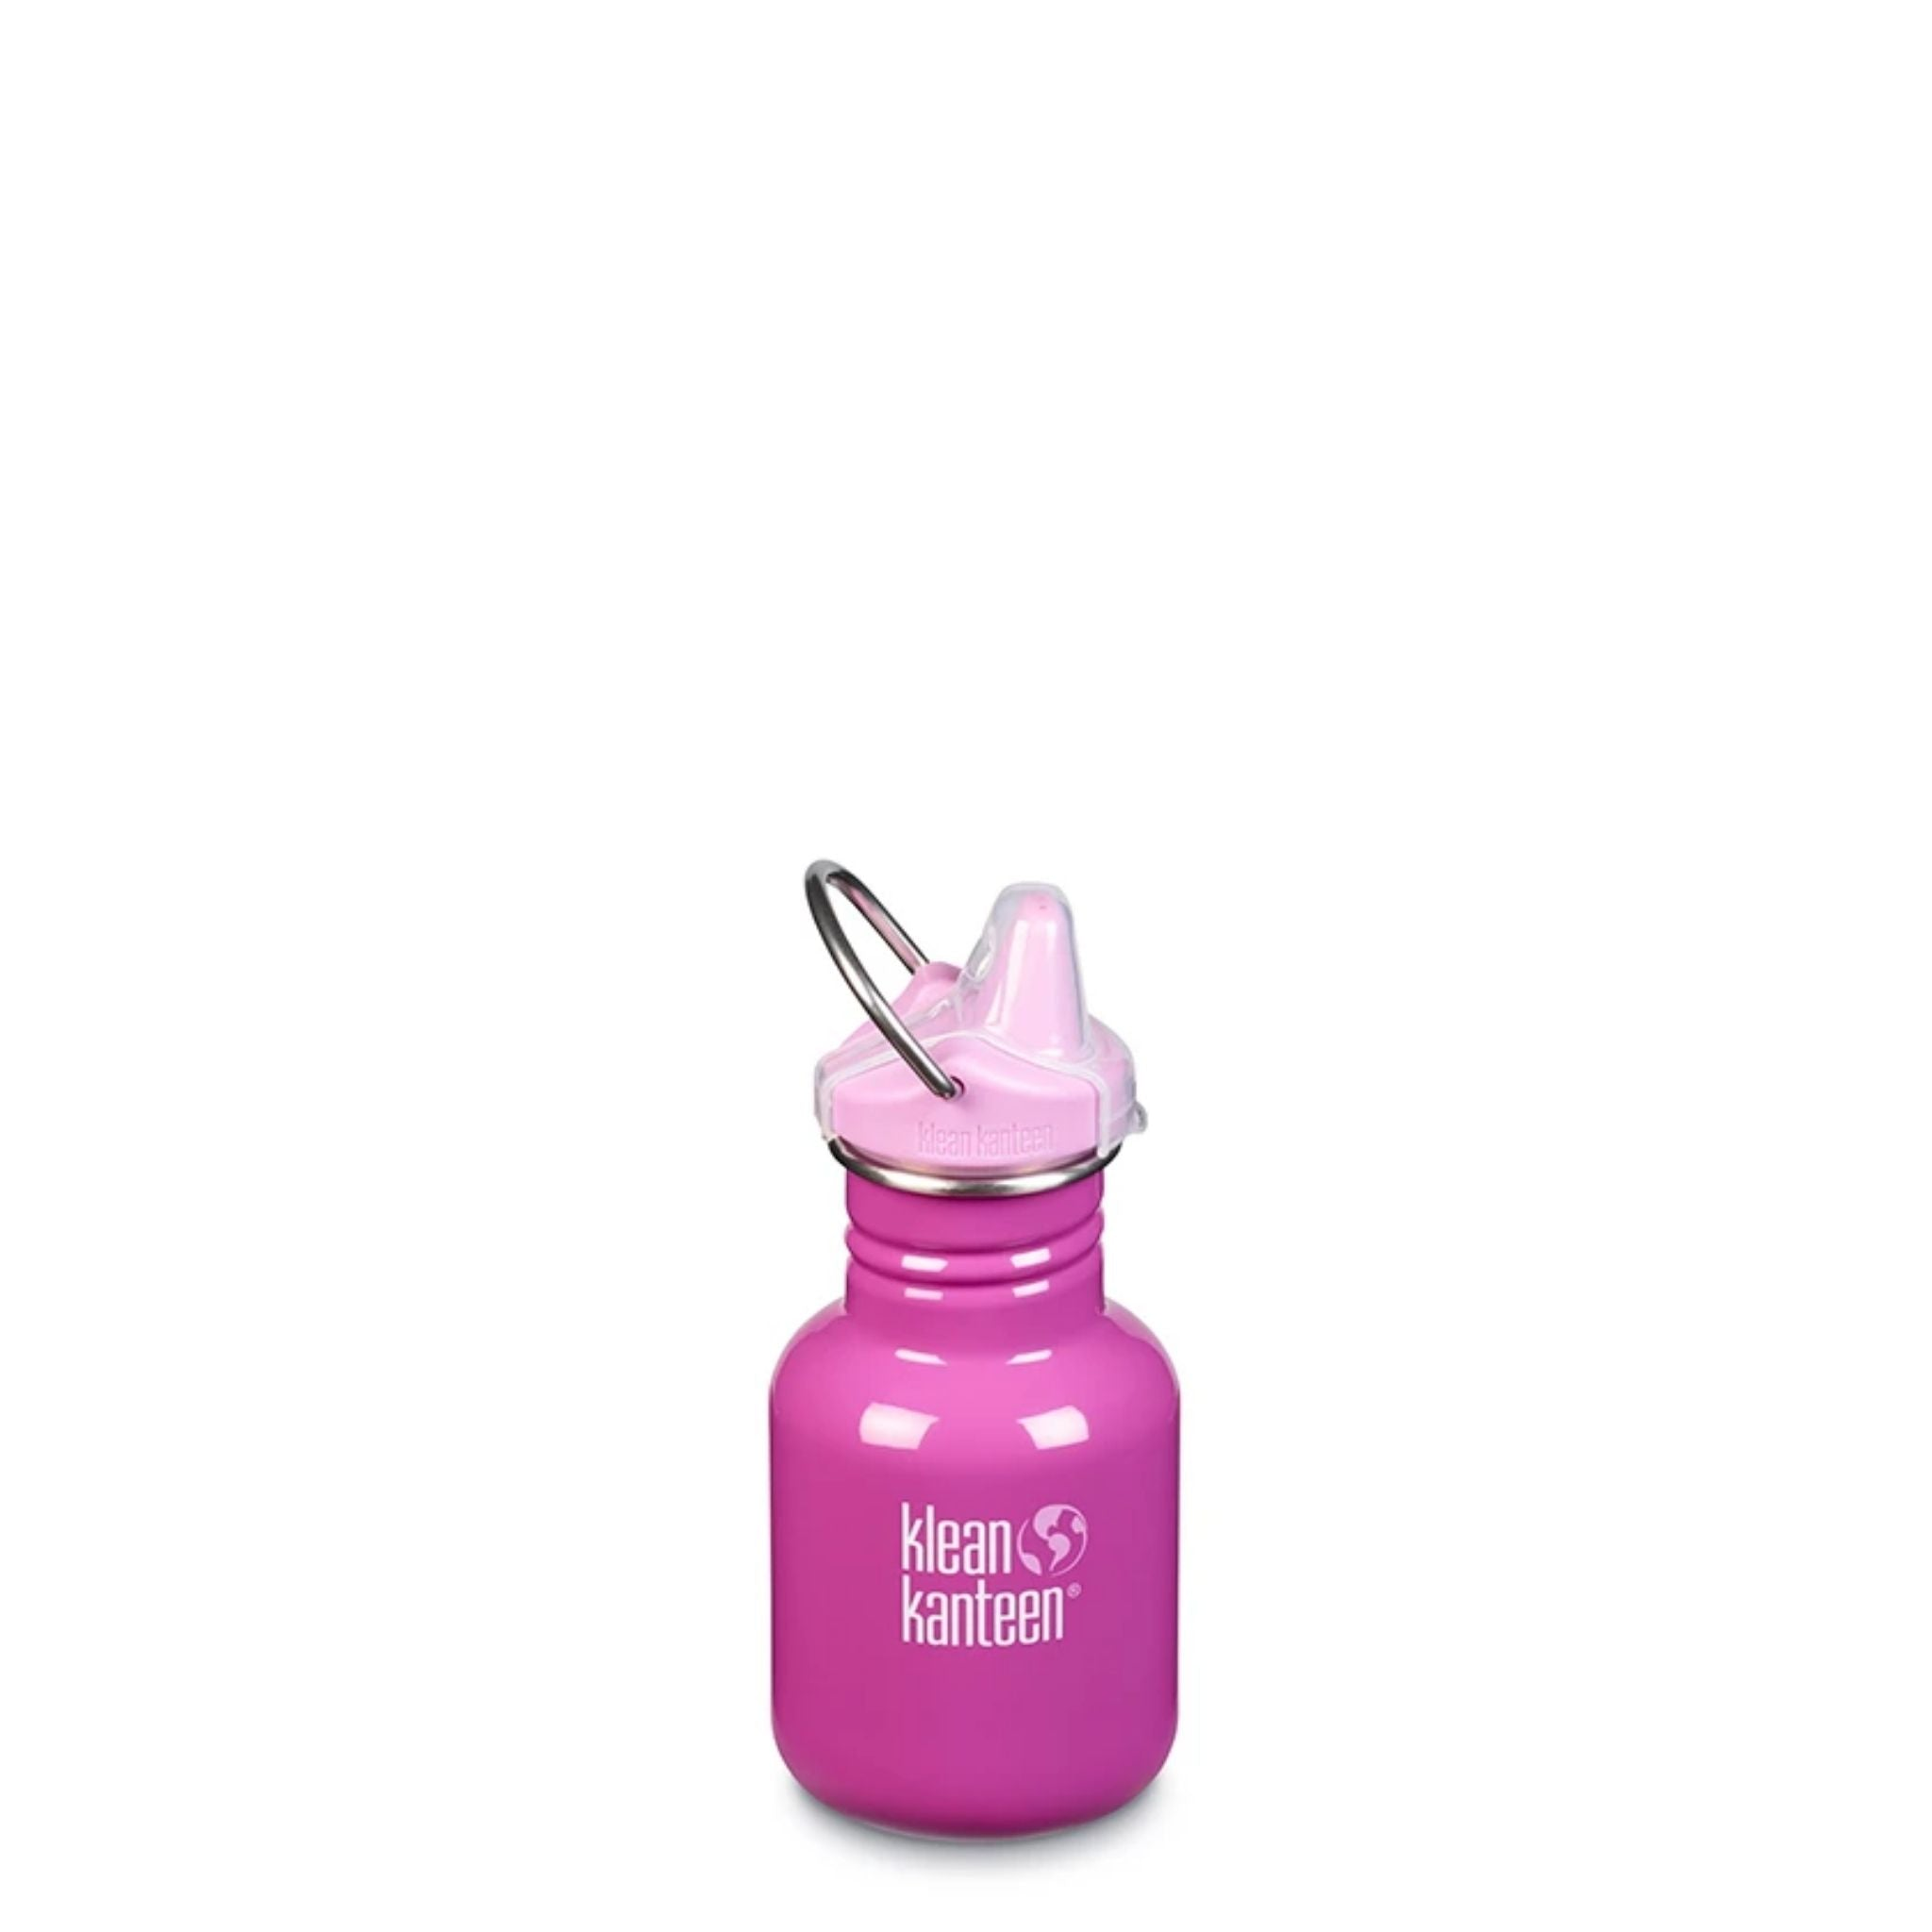 klean kanteen 12 oz sippy bottle bubble gum bright pink with words klean kanteen and globe logo engraved on side in white, light pink sippy lip with clear cover and metal loop handle